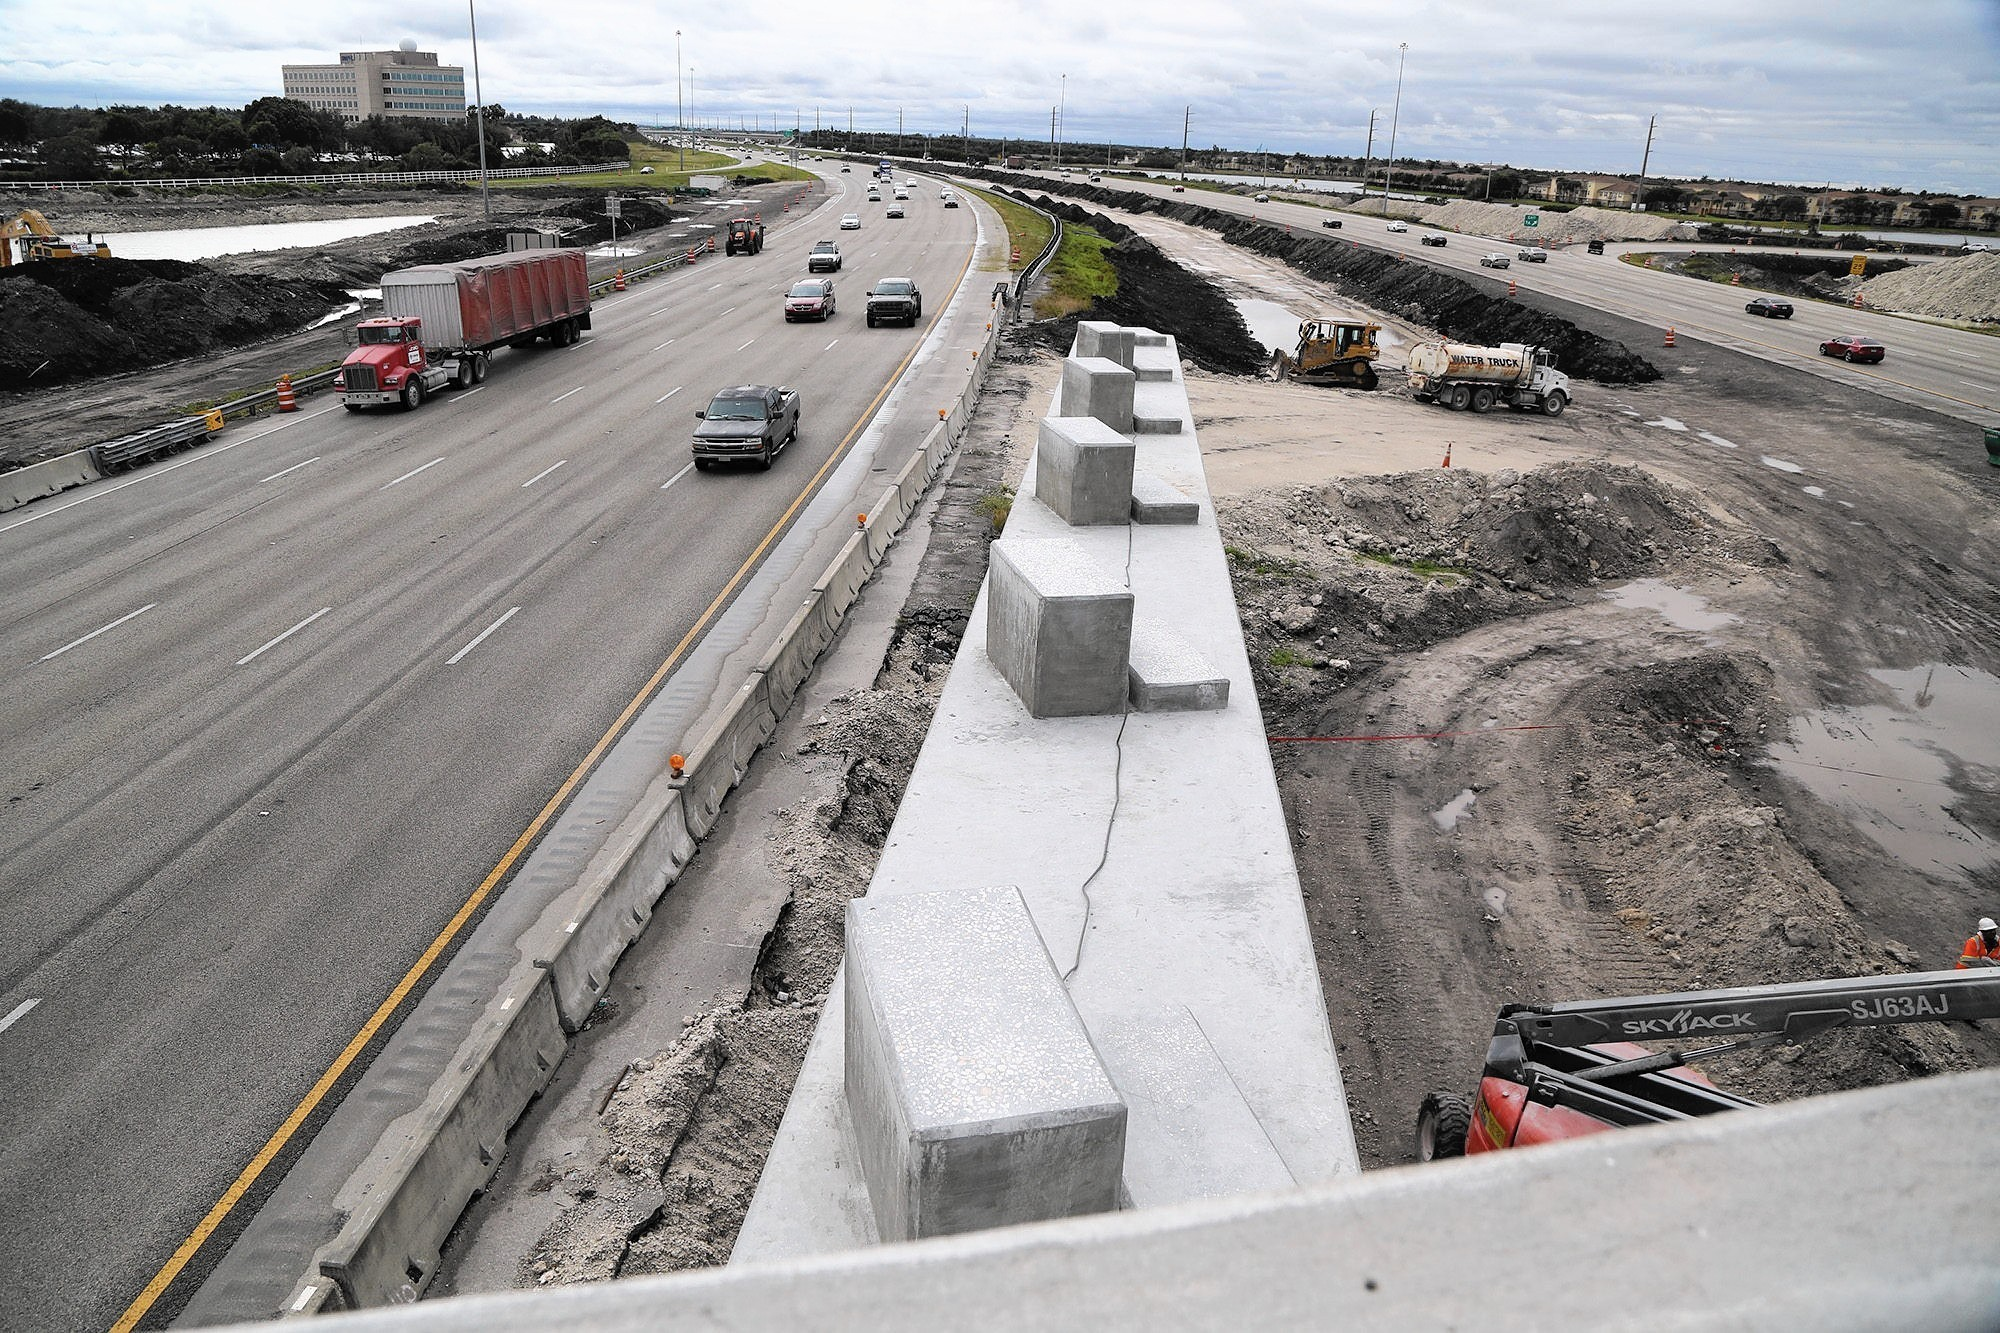 Infrastructure Engineering Florida : Engineers give florida a quot c grade for infrastructure